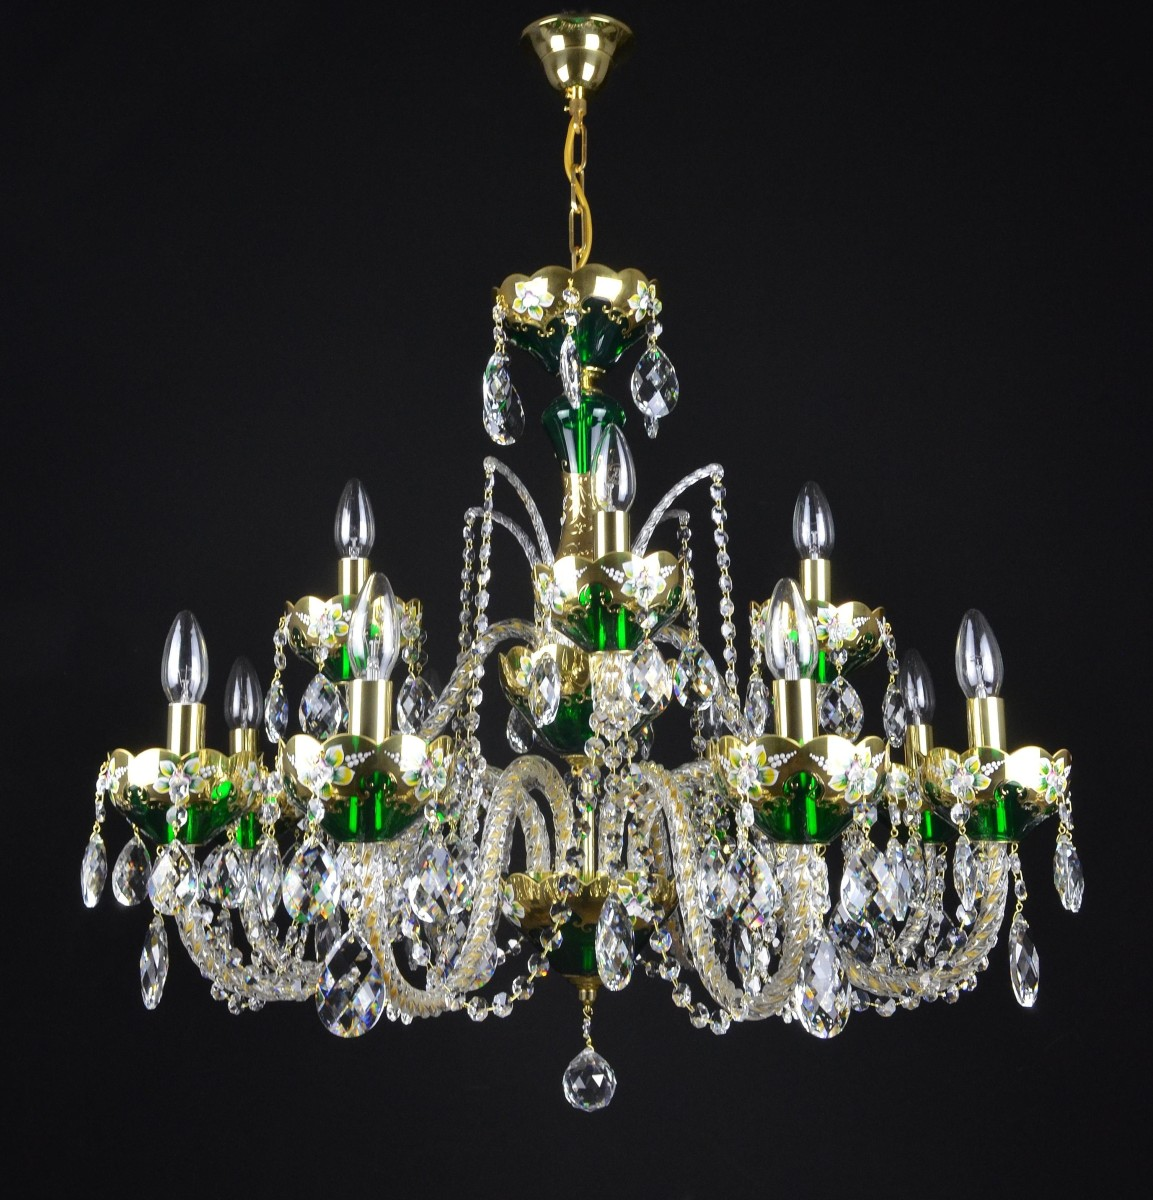 12 Arms Green Enameled Crystal Chandelier With Glass Flowers On The Gold Base